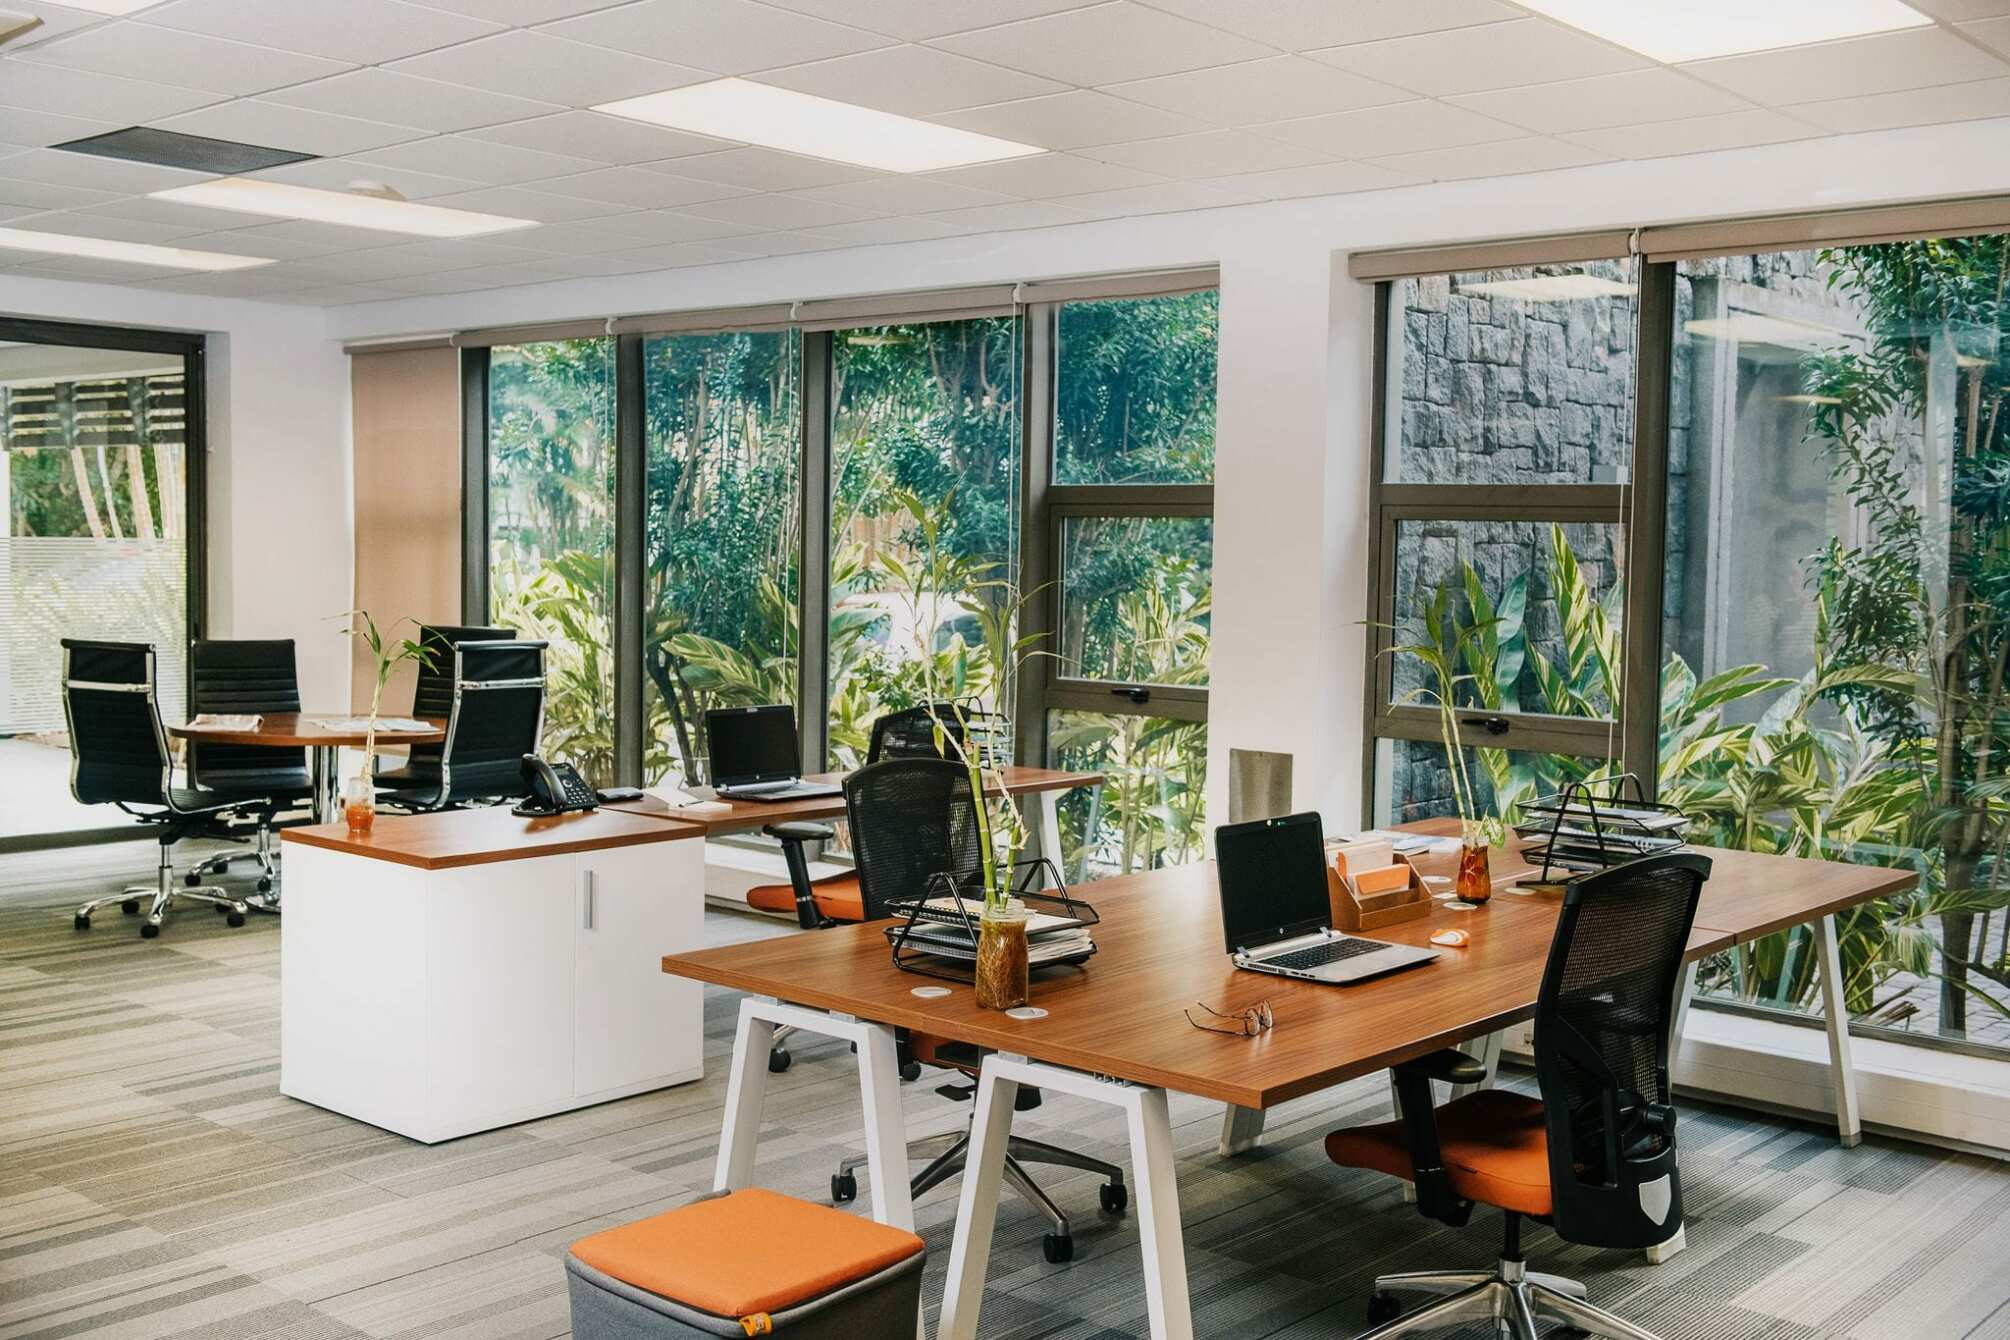 offices in moka, enl house, work in moka, iso 50001, building certification